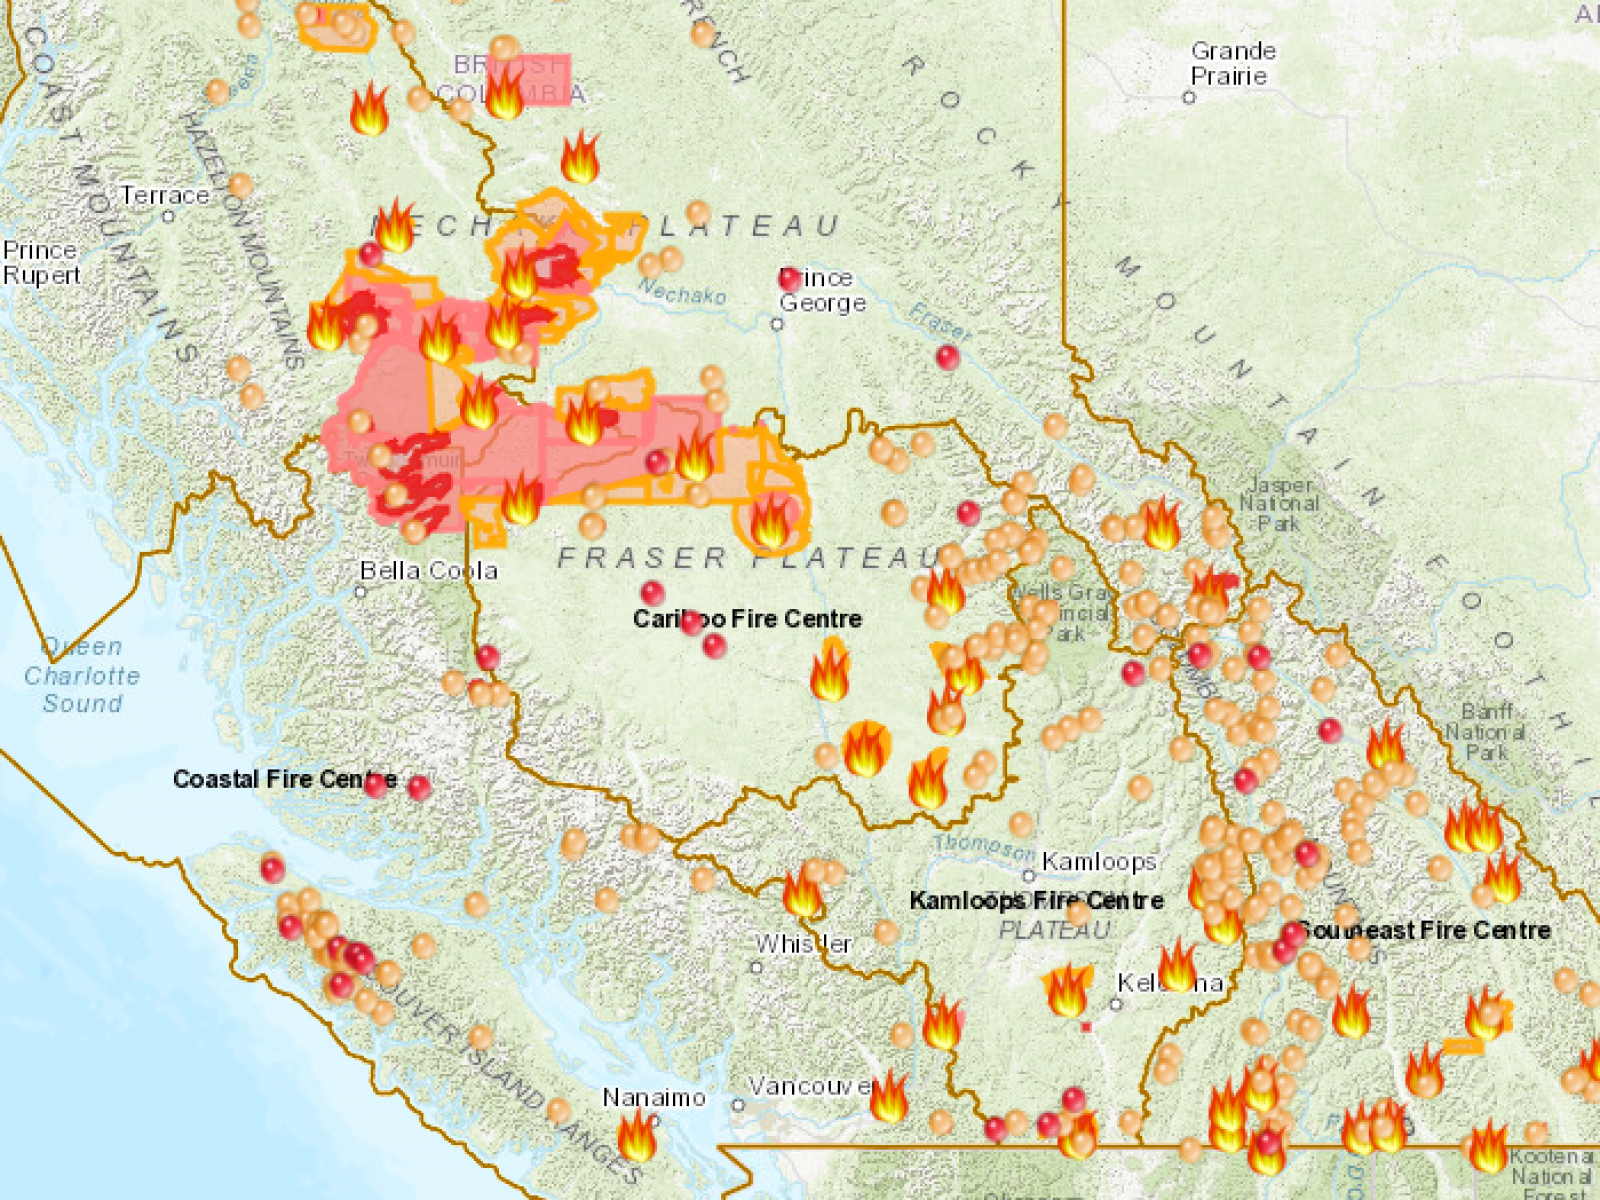 Canada Fires 2018: B.C. Wildfire Map Shows Where 566 Fires ... on canada map, pacific northwest map, british columbia government, victoria map, alberta map, alaska map, vancouver map, canadian provinces map, northwest territories map, nunavut map, victoria british columbia, vancouver on map, canadian territories map, oregon map, mexico map, usa map, glacier national park map, brazil map, united states map, british columbia hotels, new brunswick map, manitoba map, americas map, whistler map, quebec map, vancouver downtown map, banff map, vancouver island map, ontario map, british columbia attractions,